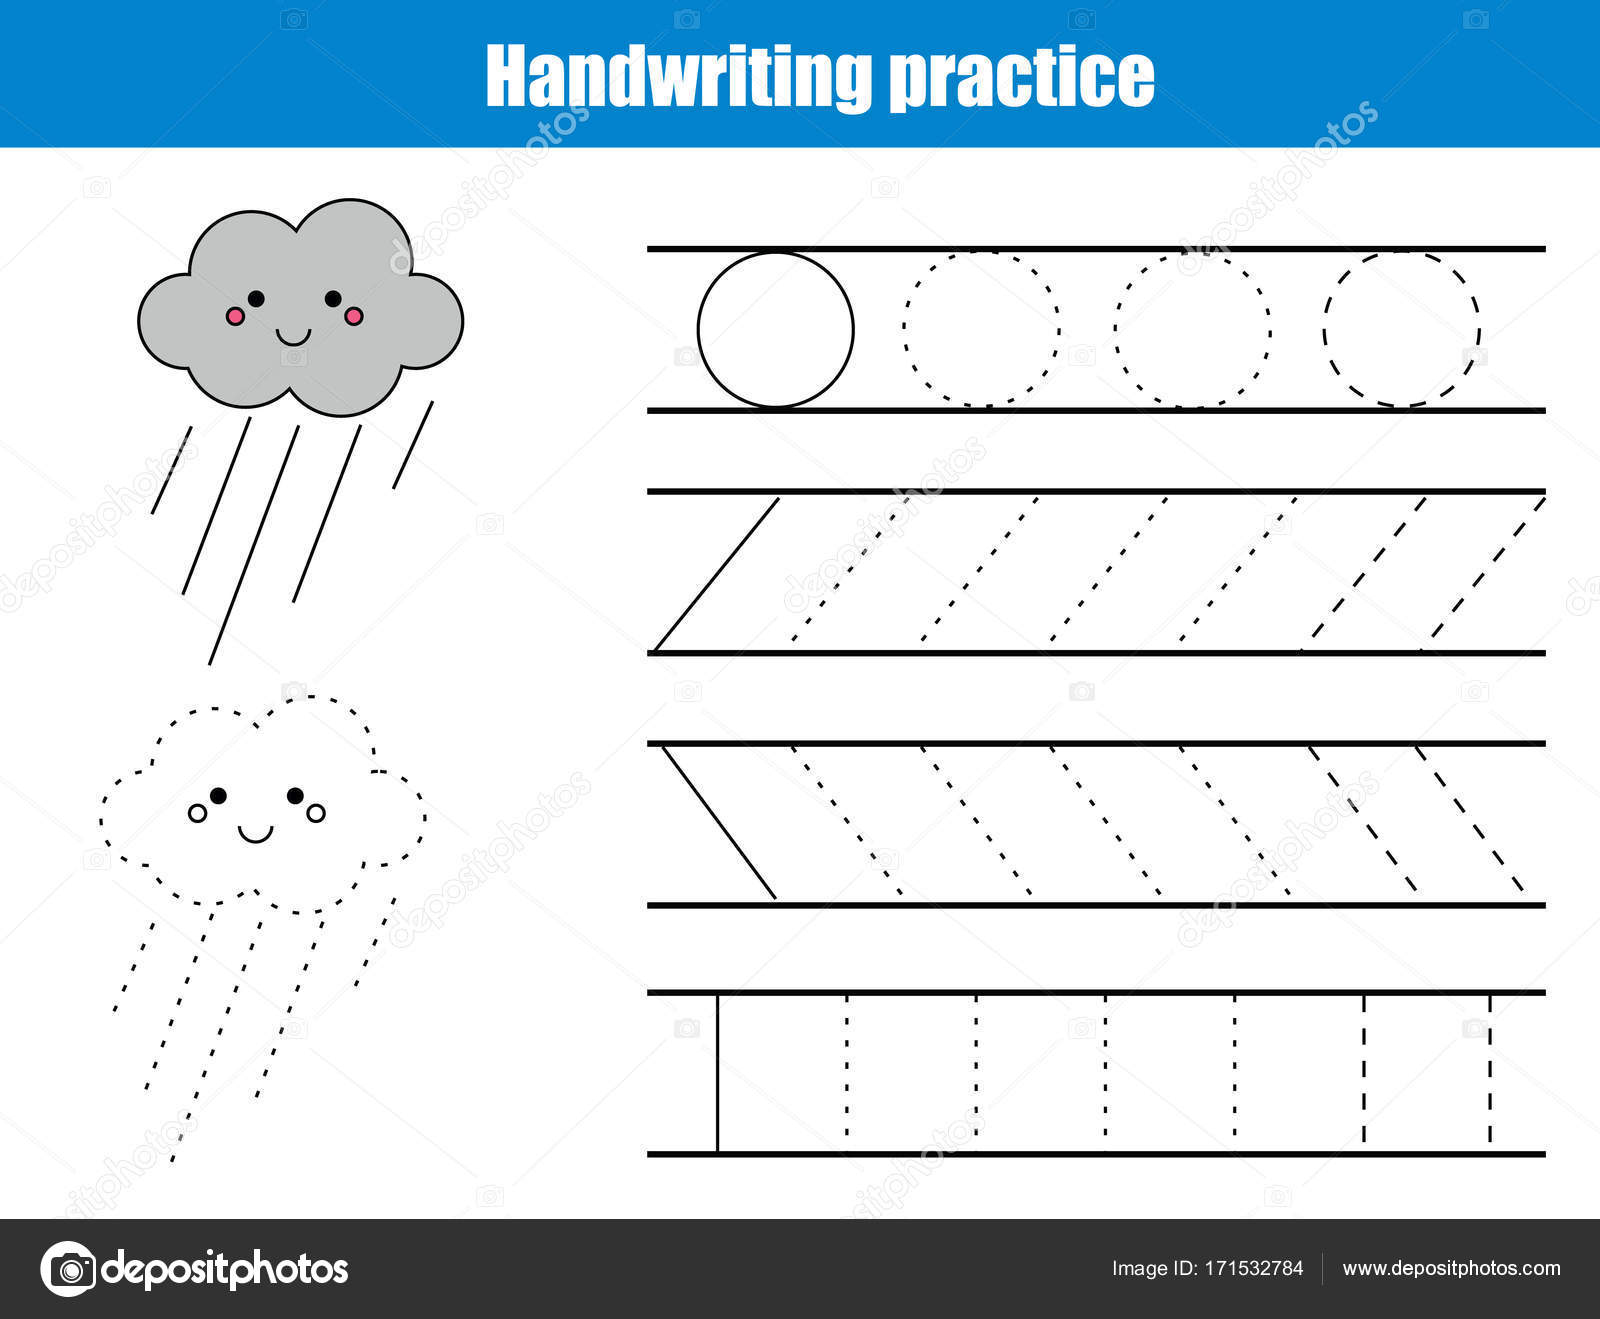 Handwriting Practice Sheet. Educational Children Game, Printable Worksheet  For Kids. Writing Training Printable Worksheet With Lines And Cartoon Rainy  Cloud ...